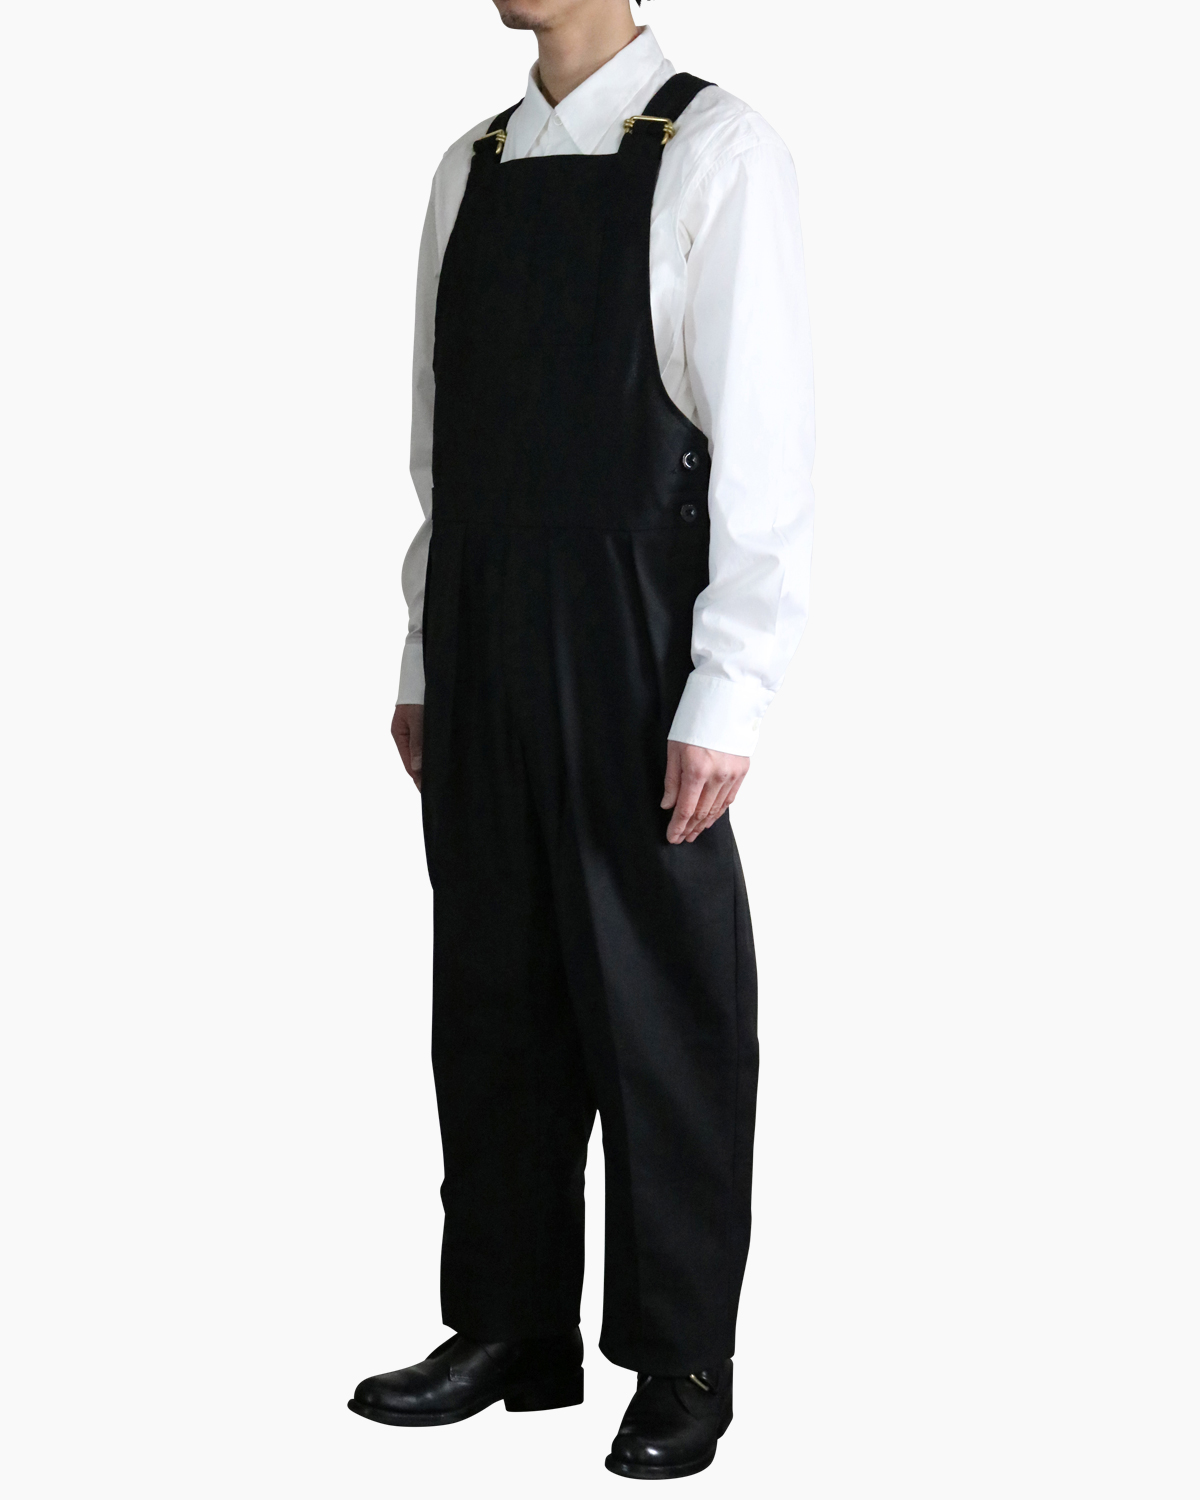 HOPSACK|OVERALL - Black|NEAT